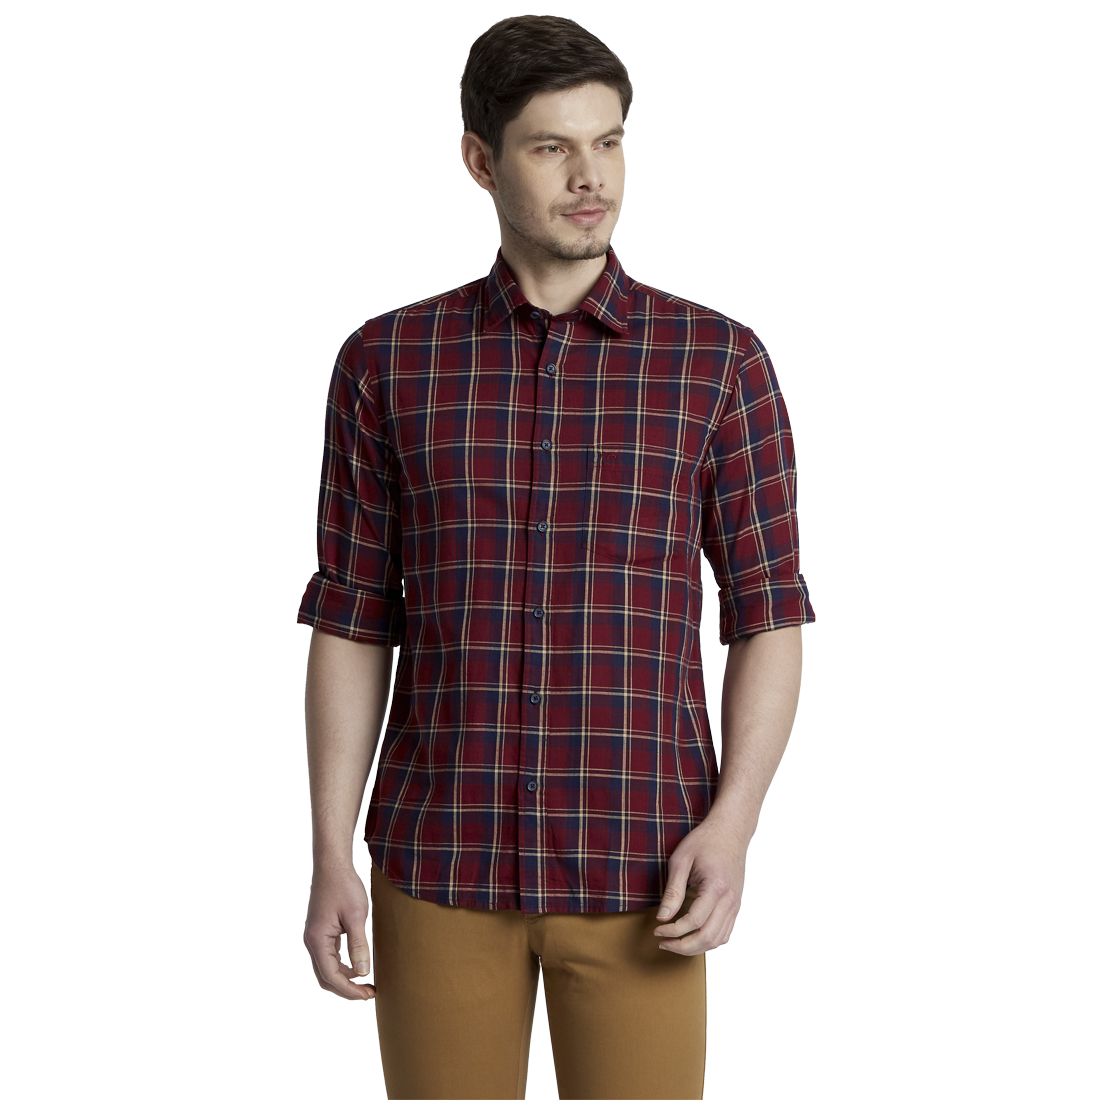 ColorPlus | ColorPlus Dark Red Tailored Fit Shirts